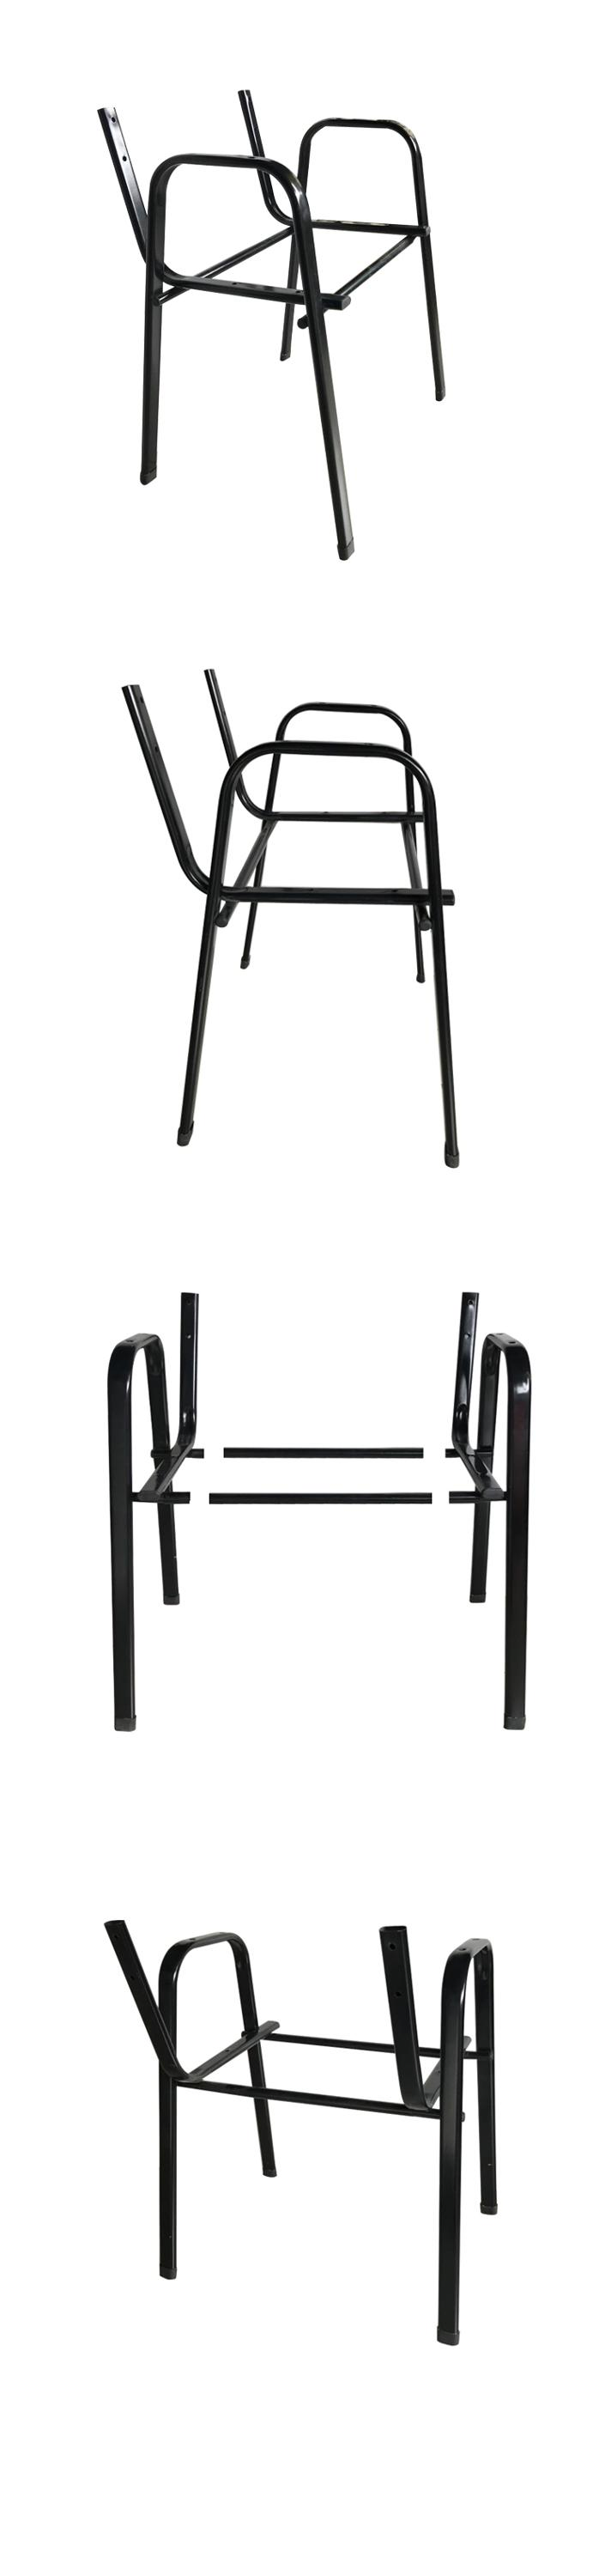 Hardware furniture parts student visitor black iron metal chair frame, View  chair frame, Genal Product Details from Foshan Genal Furniture Co., Ltd.